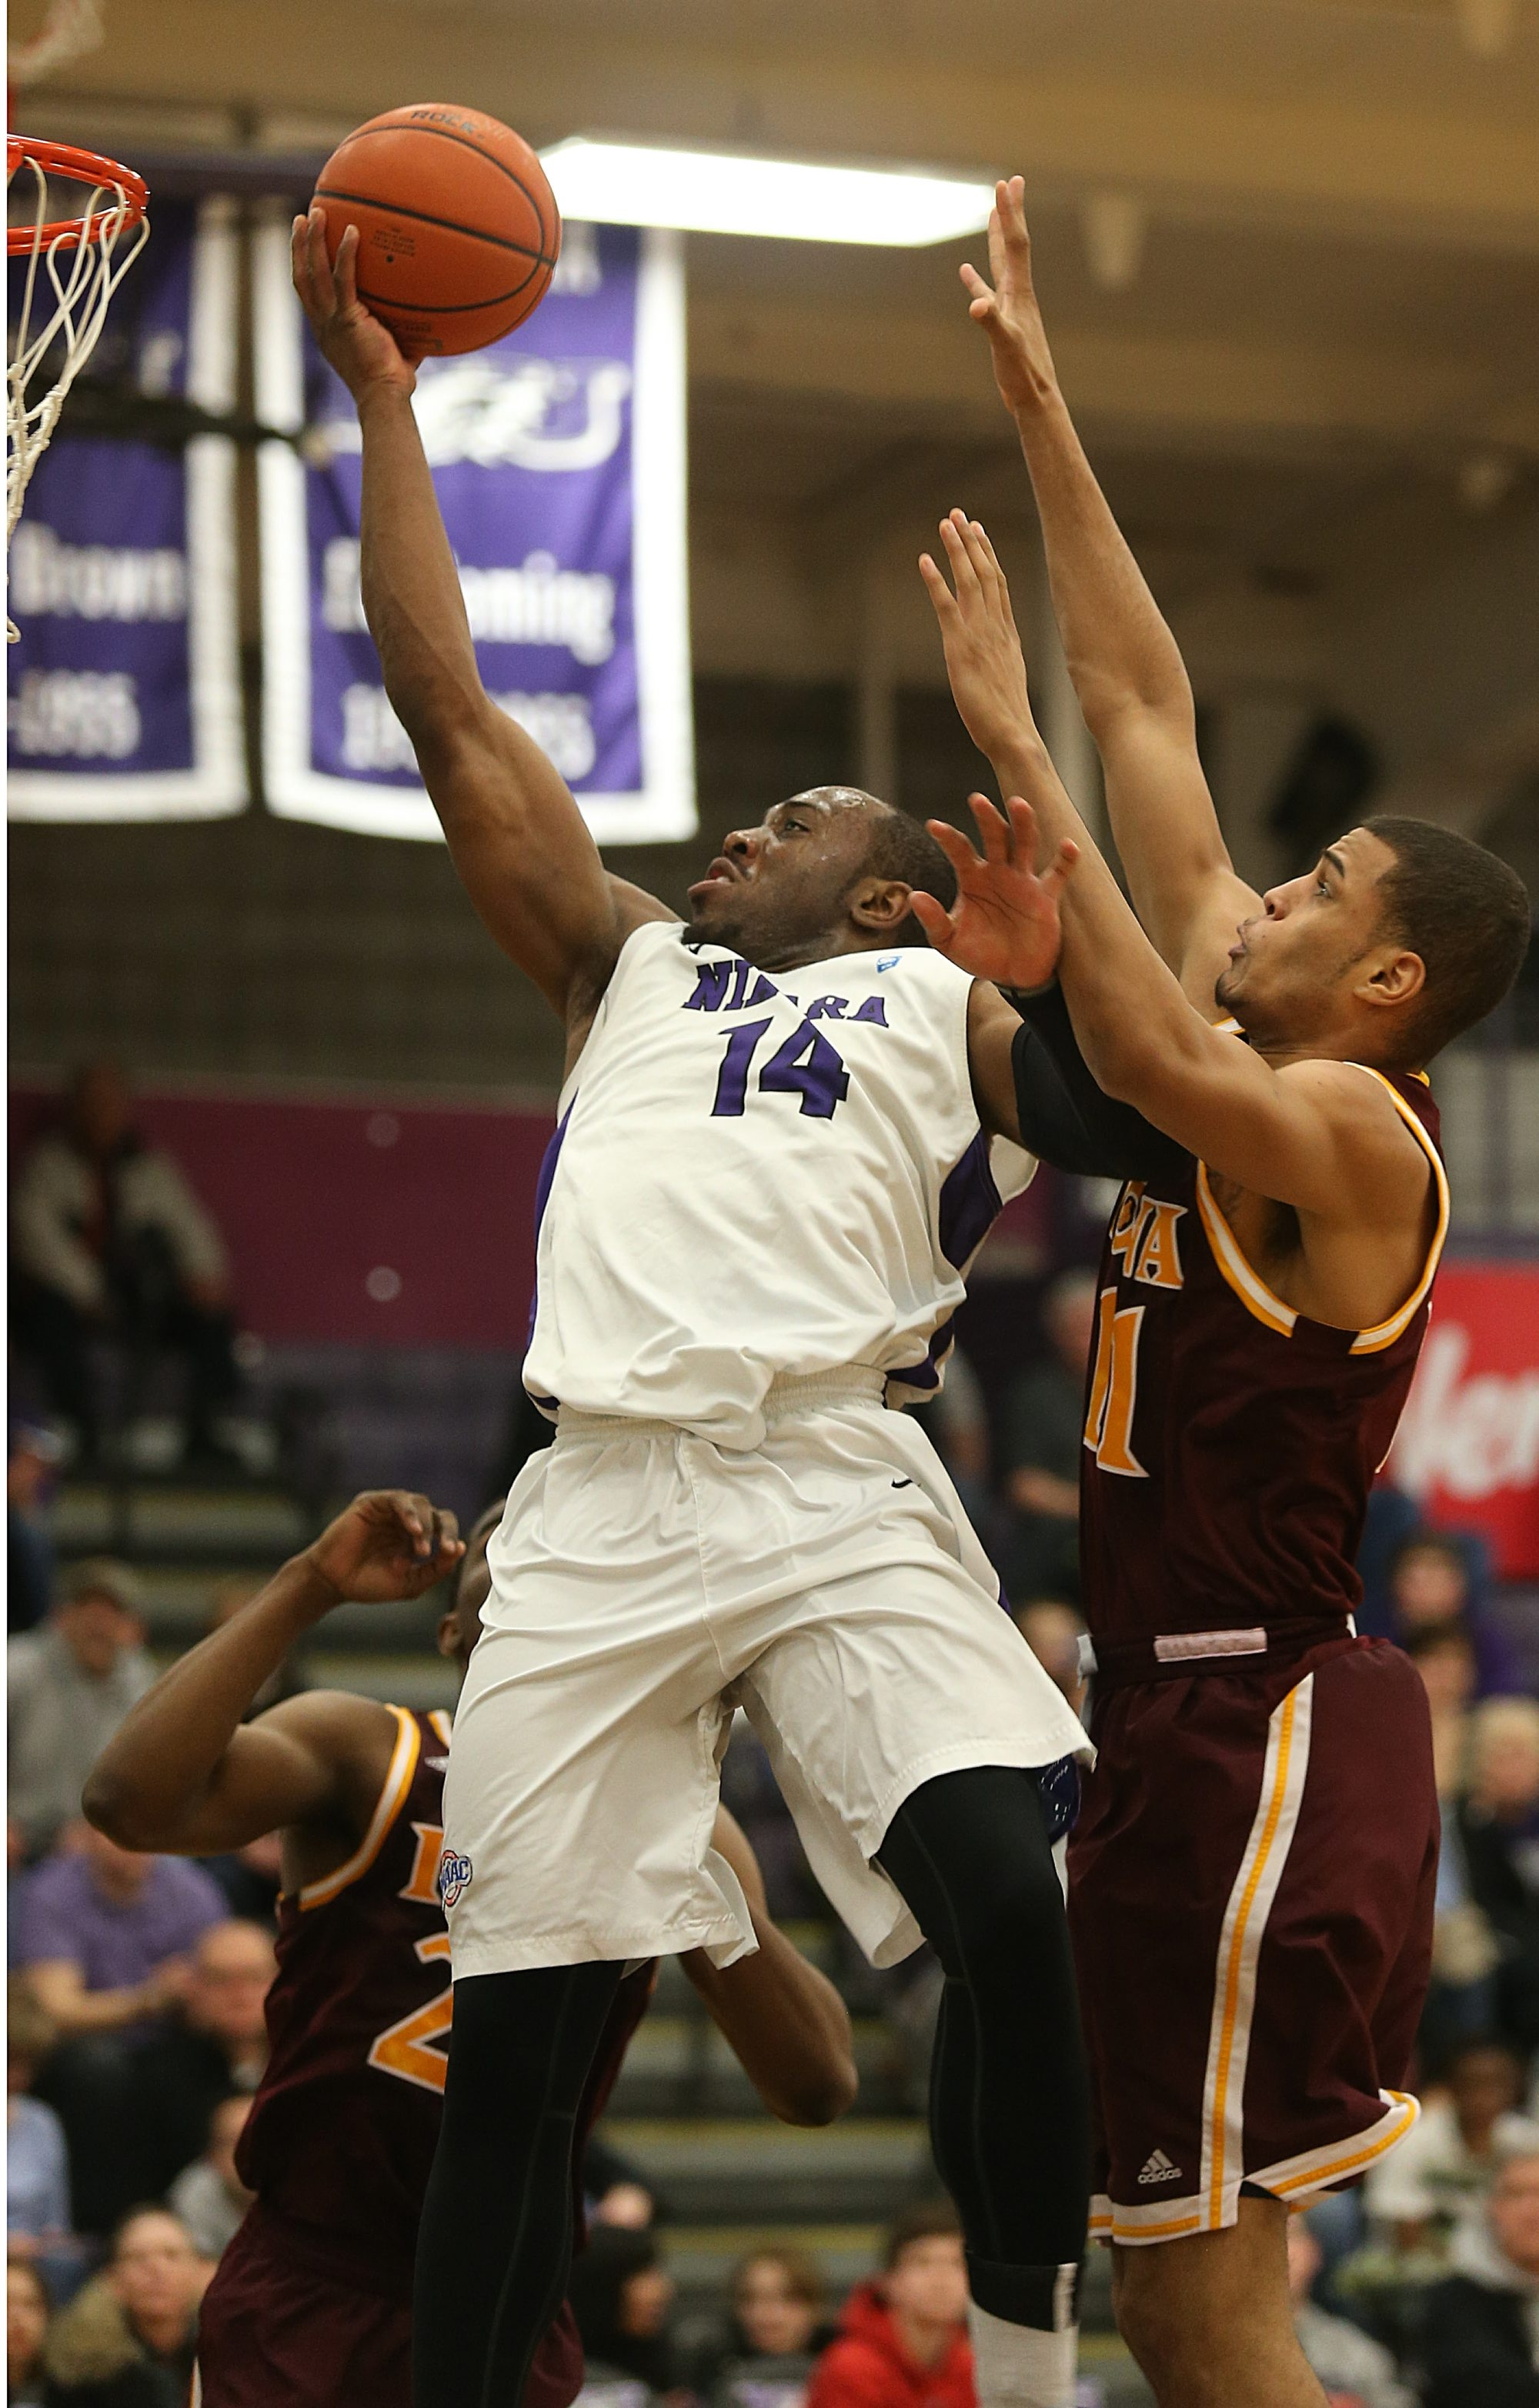 Niagara's Rayvon Harris goes to the hoop under pressure from Grant Ellis of Iona.  The Gaels won the game at the Gallagher Center, 90-89.